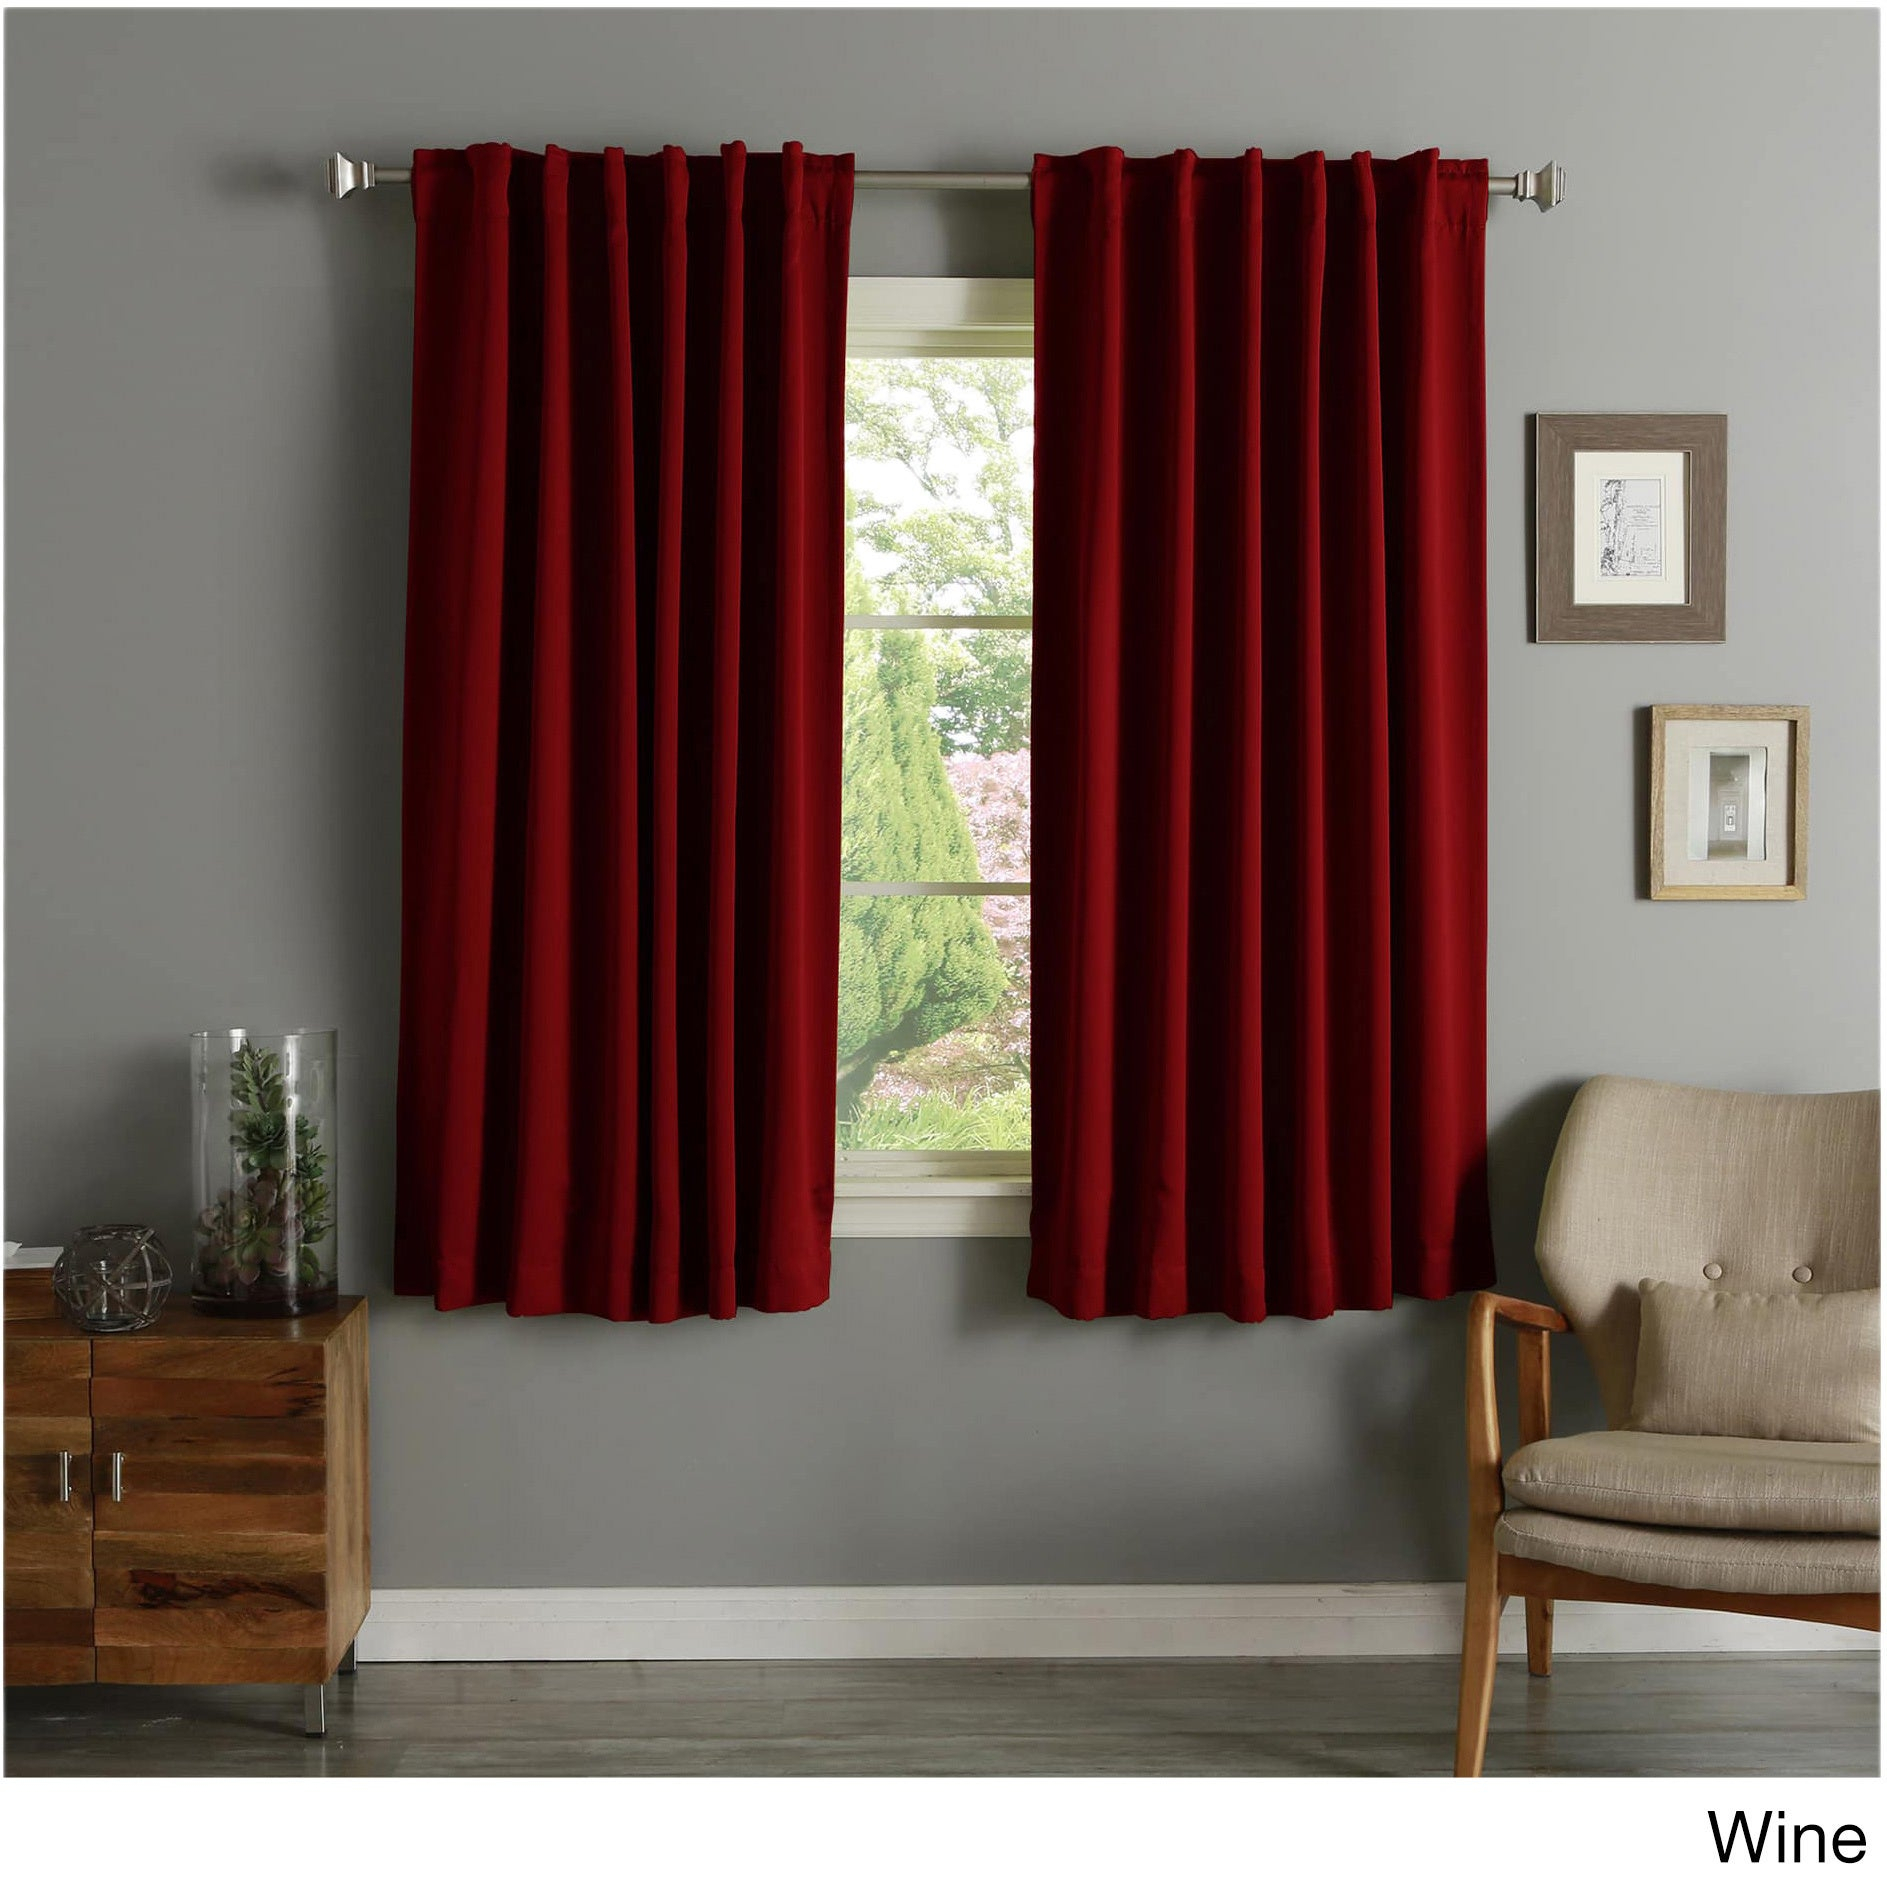 Aurora Home Solid Insulated Thermal 63 Inch Blackout Curtain Panel Pair Regarding Curtain Panel Pairs (View 4 of 20)